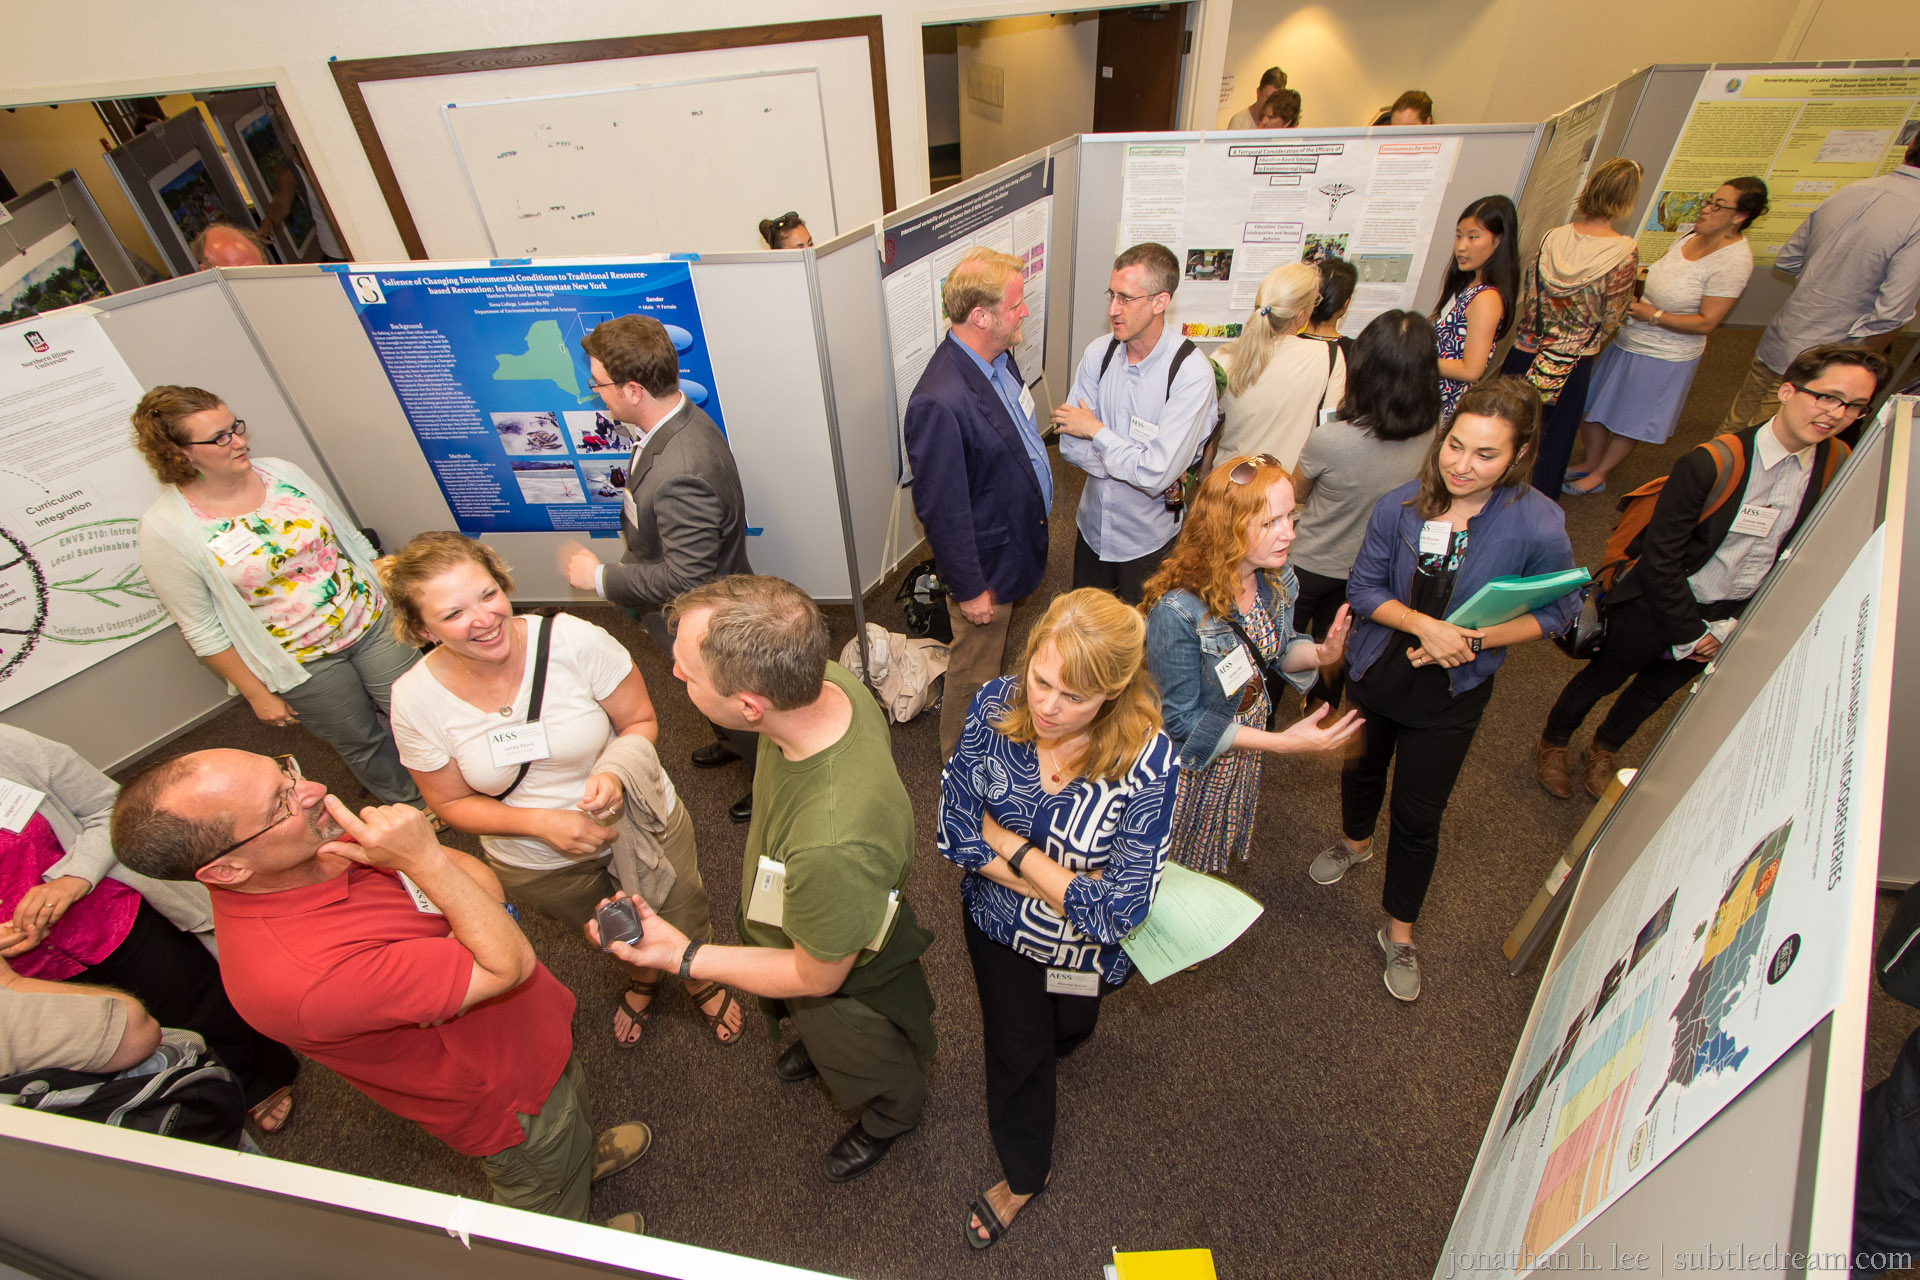 Lively Student Poster Session